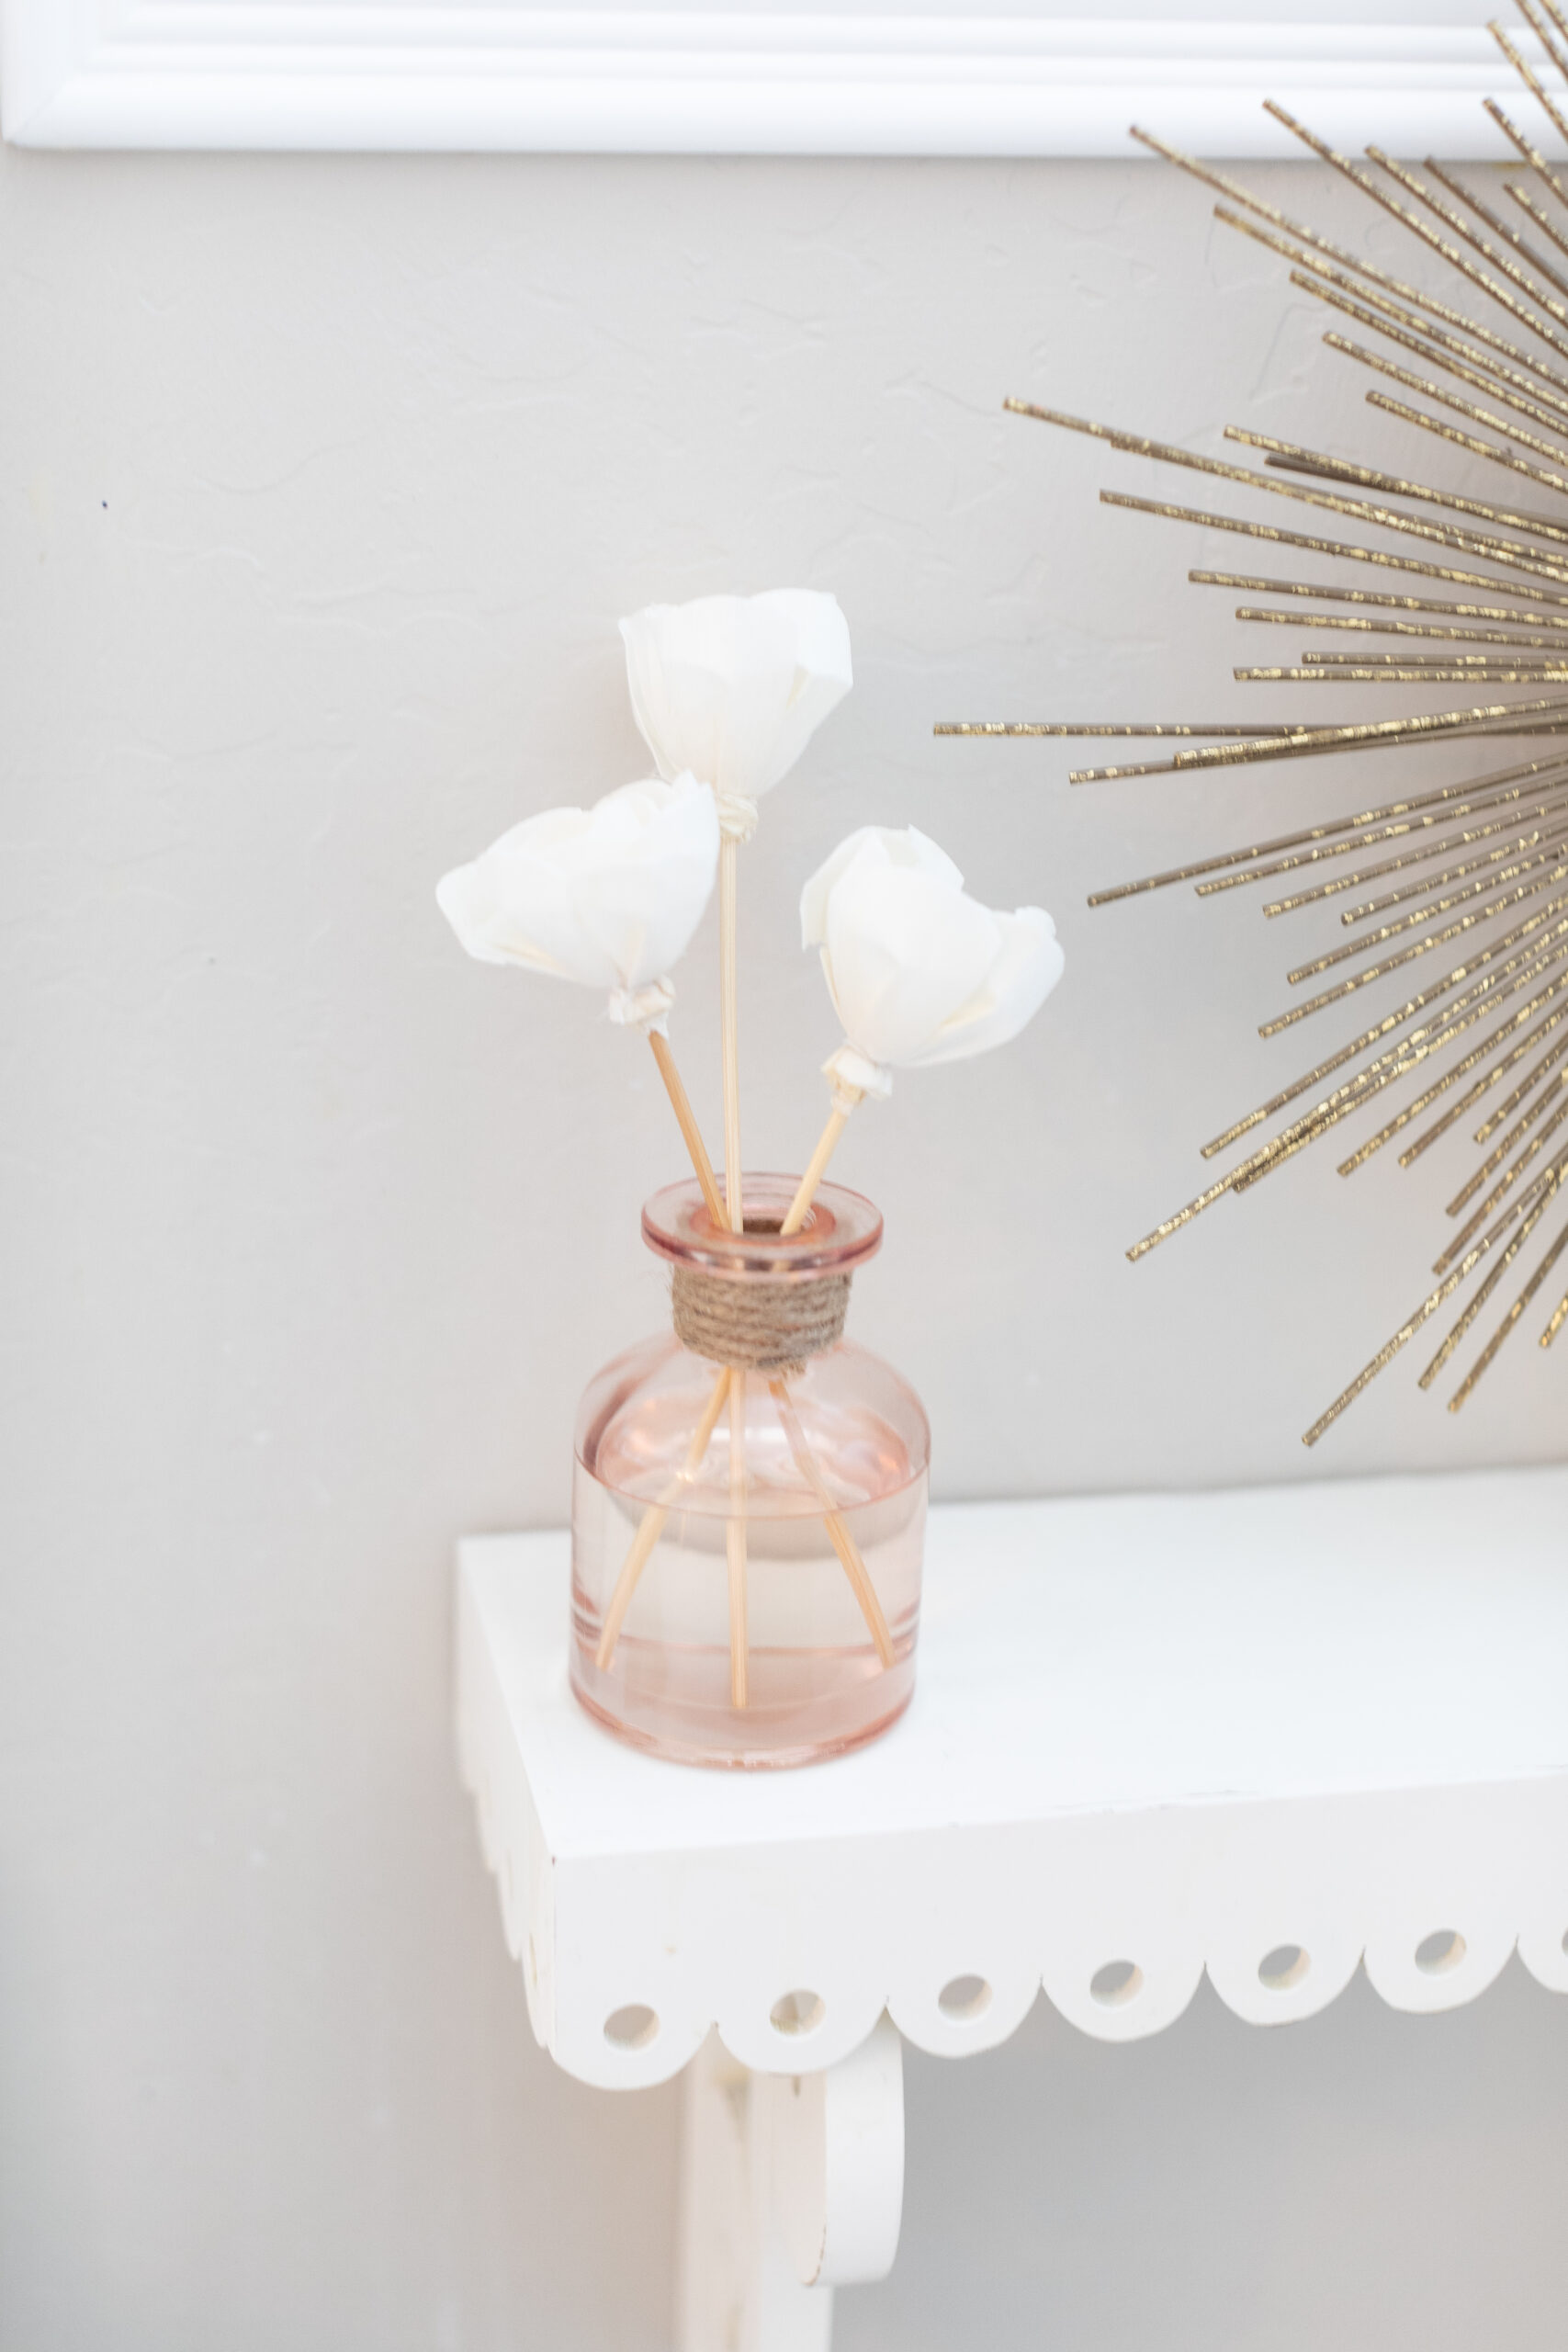 Diffuser from Target